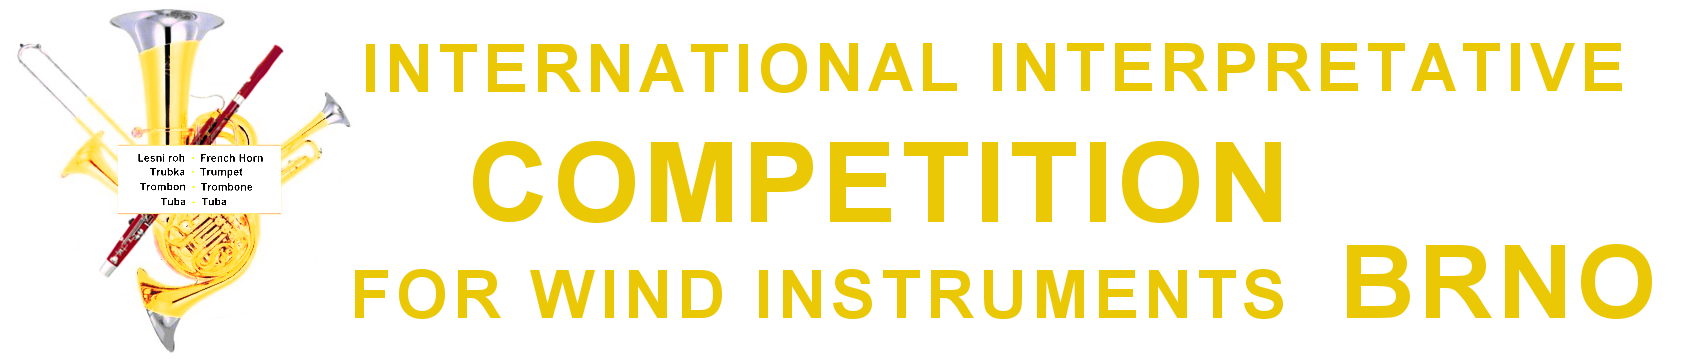 International interpretative wind instruments competition Brno